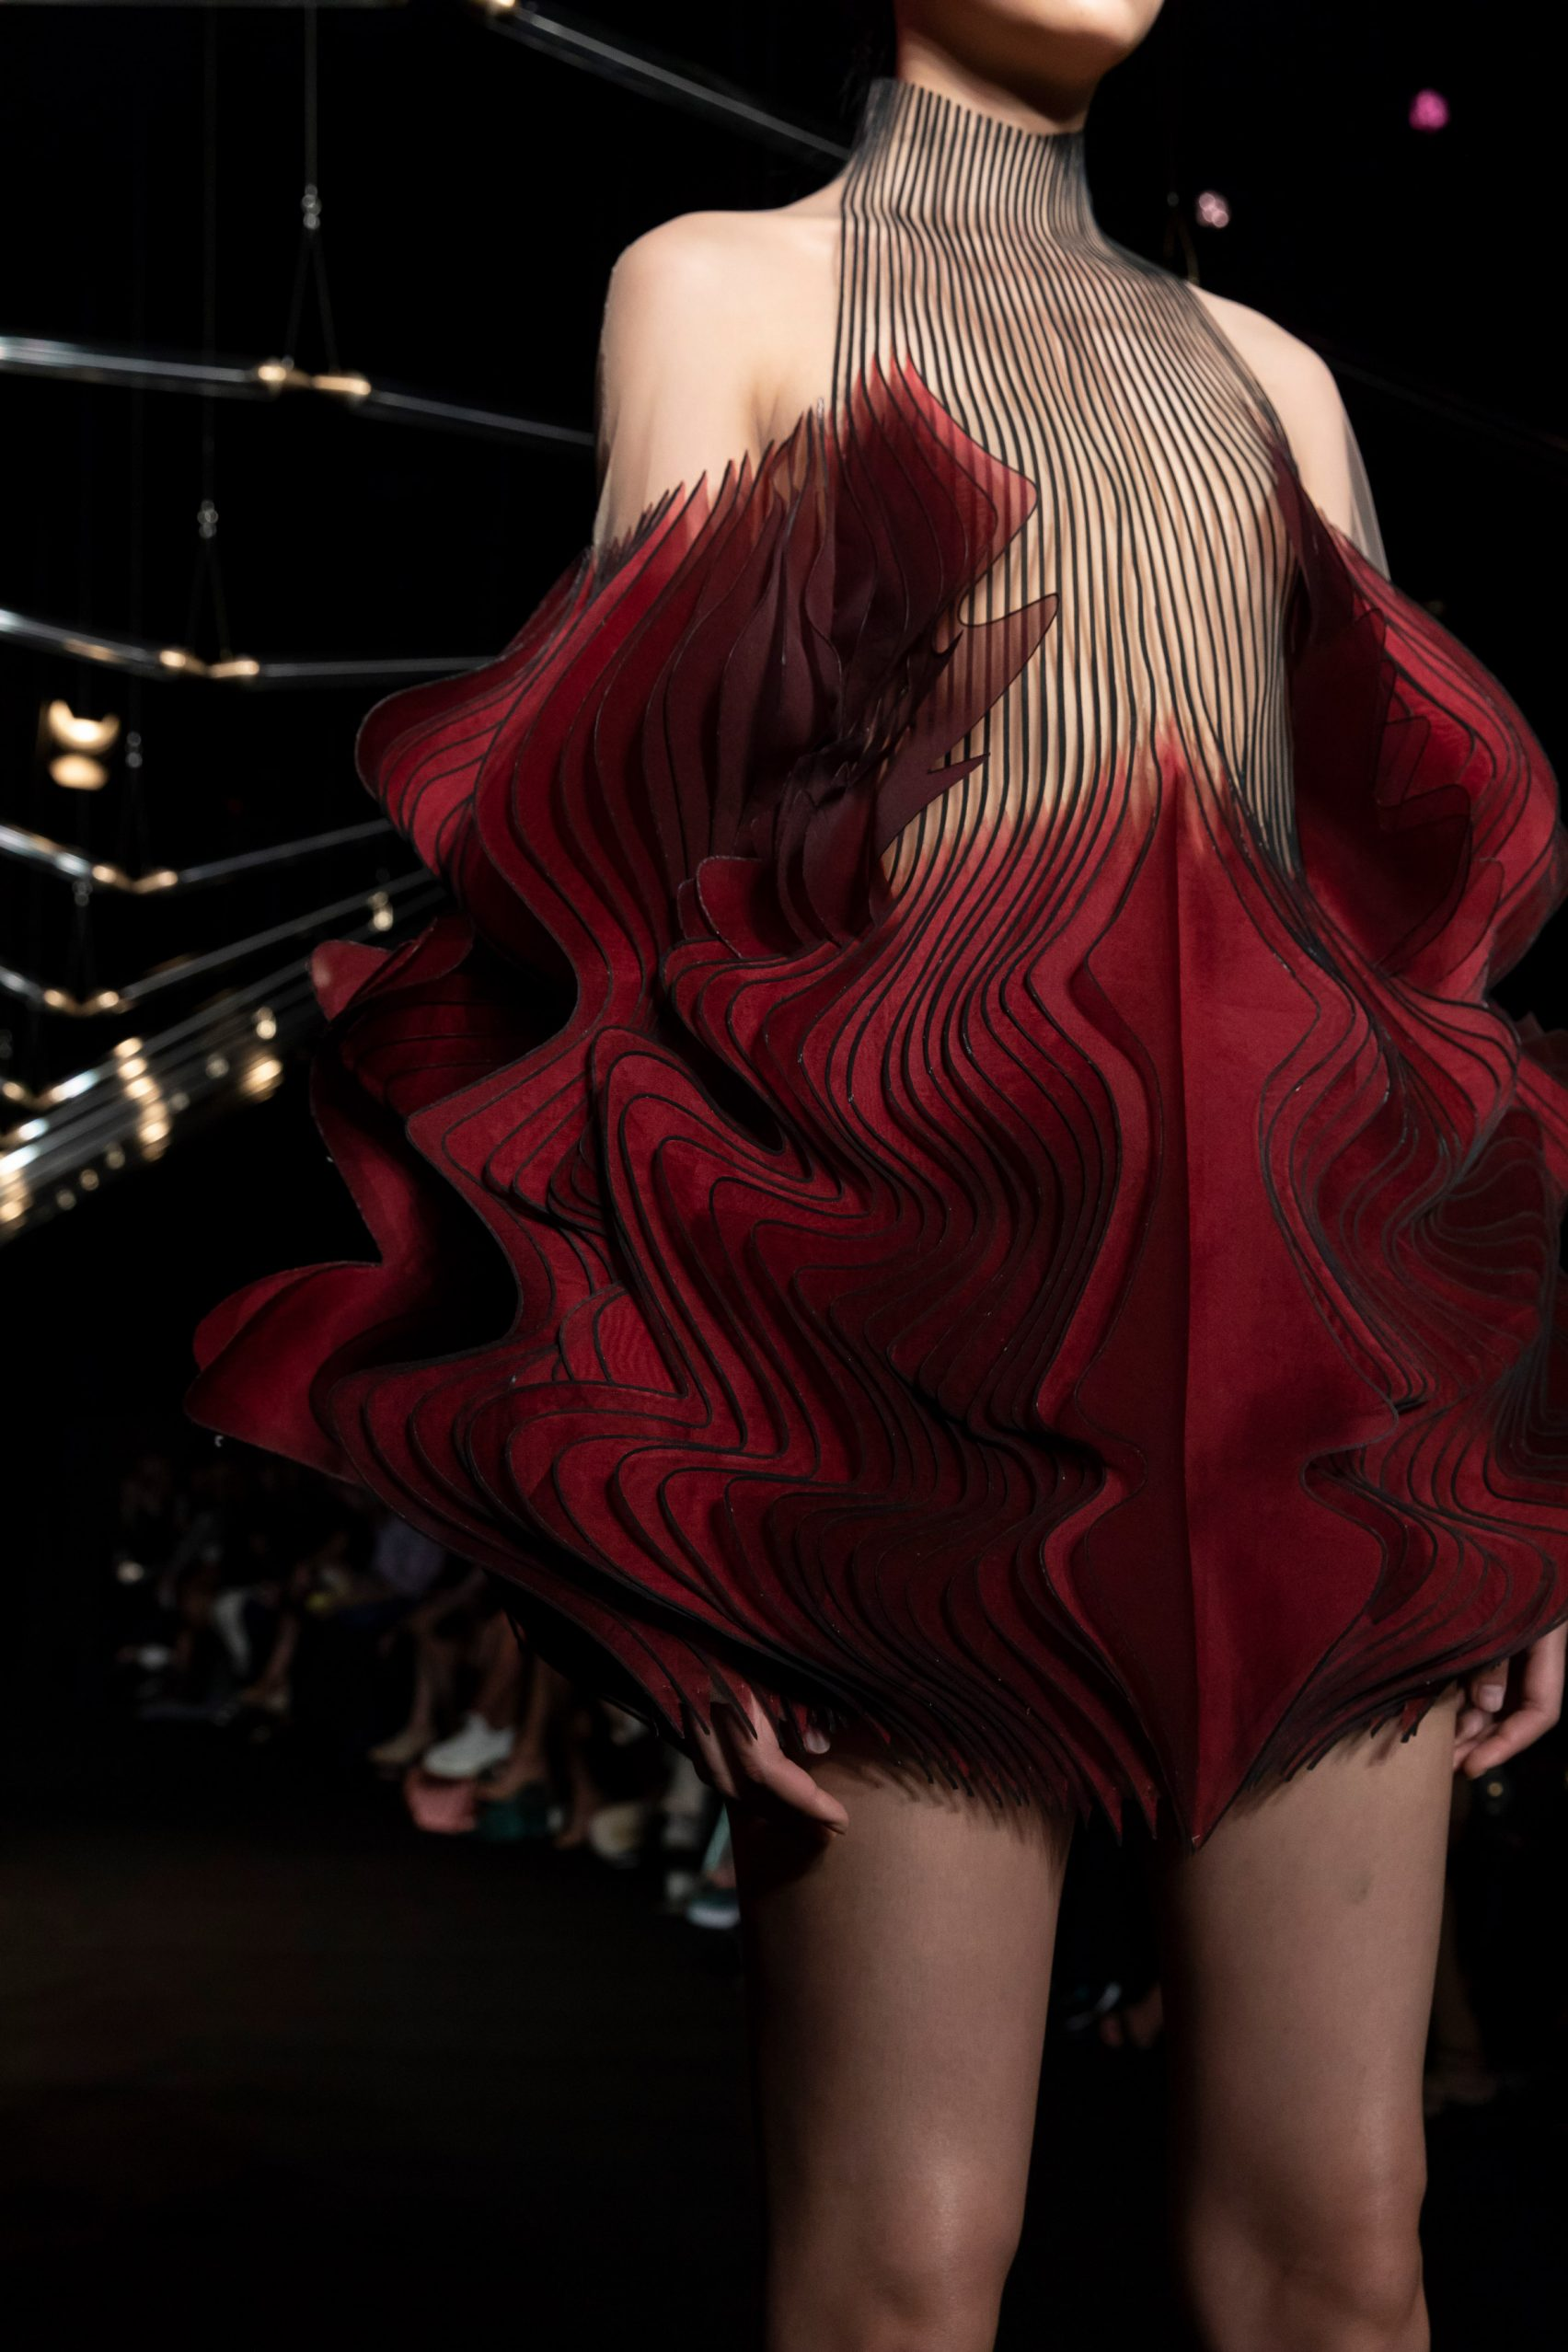 studio-drift-iris-van-herpen-fashion-design_dezeen_2364_col_13-1704x2556